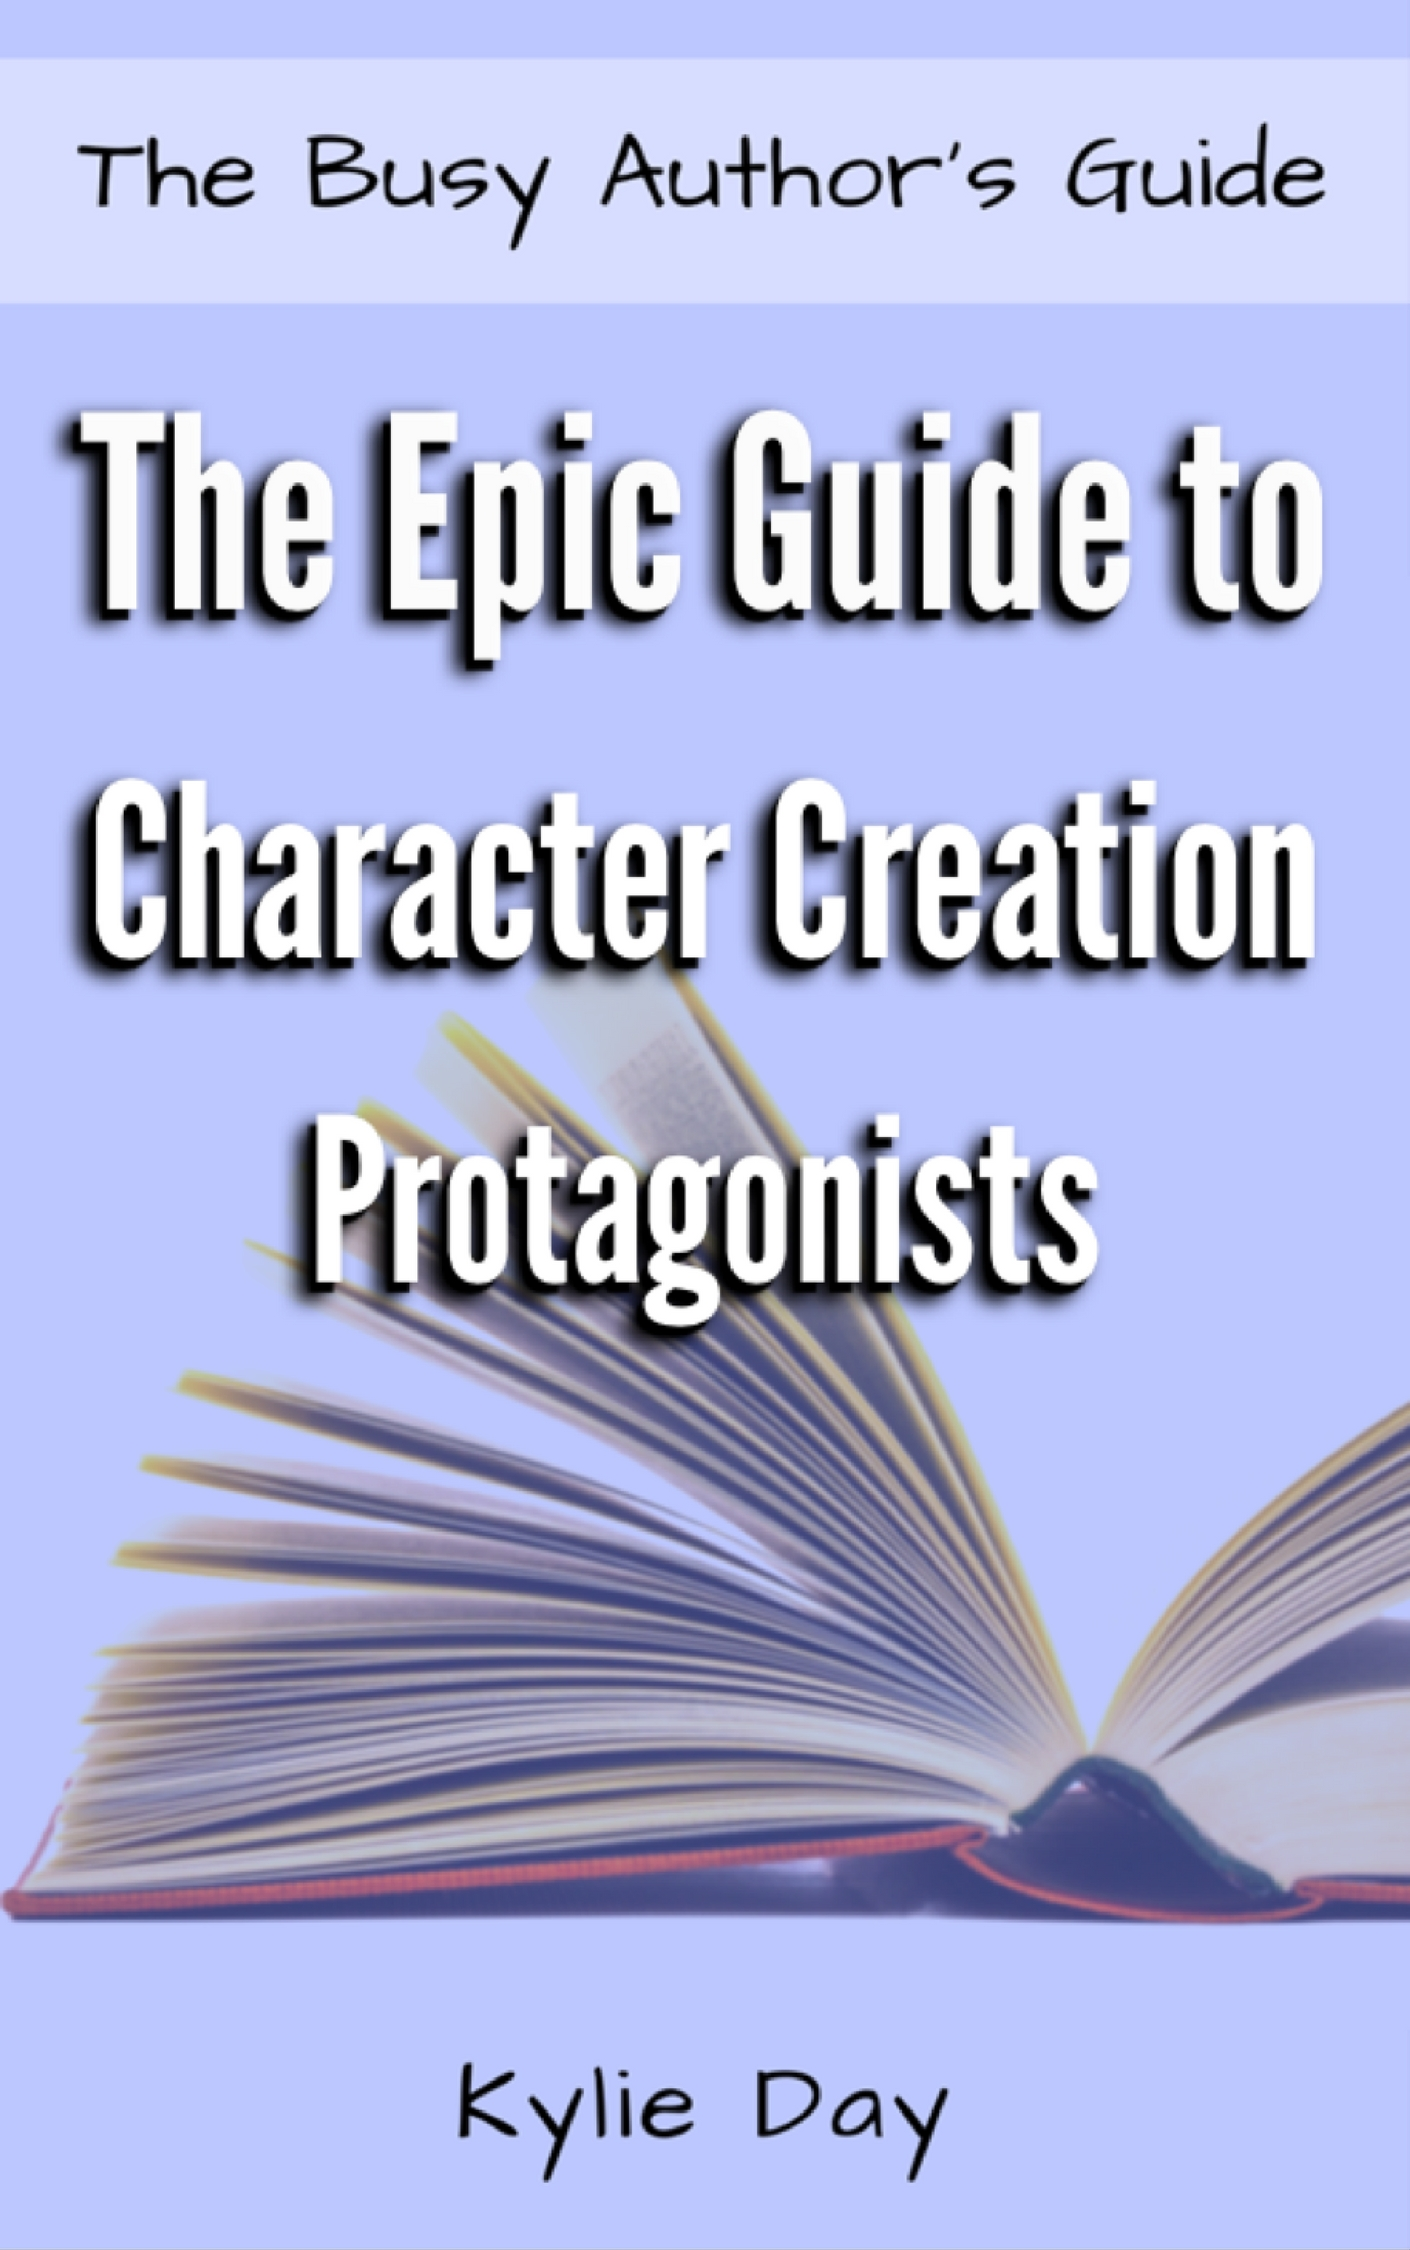 THE EPIC GUIDE TO CHARACTER CREATION: PROTAGONISTS